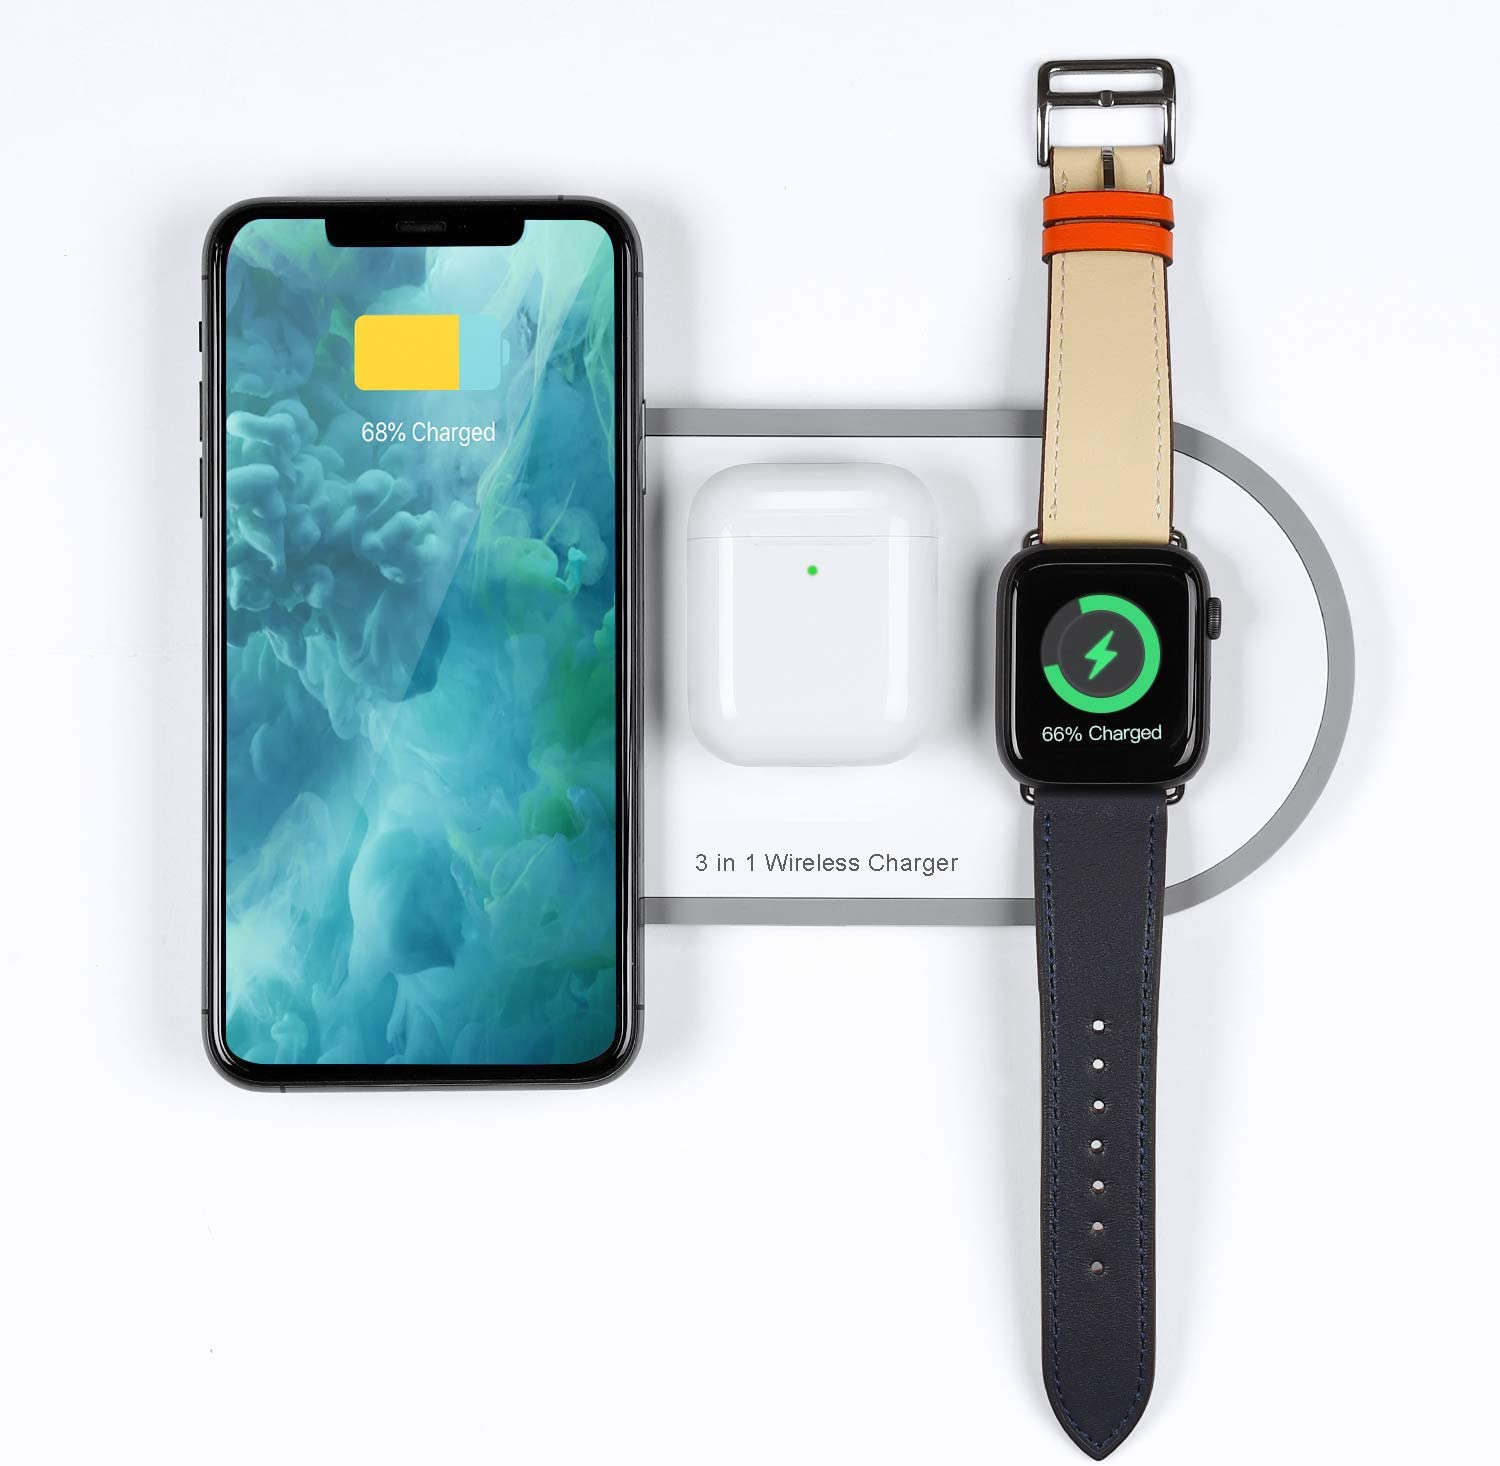 Wireless 3 in 1 Charger Pad for Fast Charging Station Dock Mat for Apple iWatch Series 5 4 3 2 1 AirPods Charger for iPhone 11 11 pro Xs Max Xr X 8 8 Plus for Android Smartphone All qi-Enabled Devices